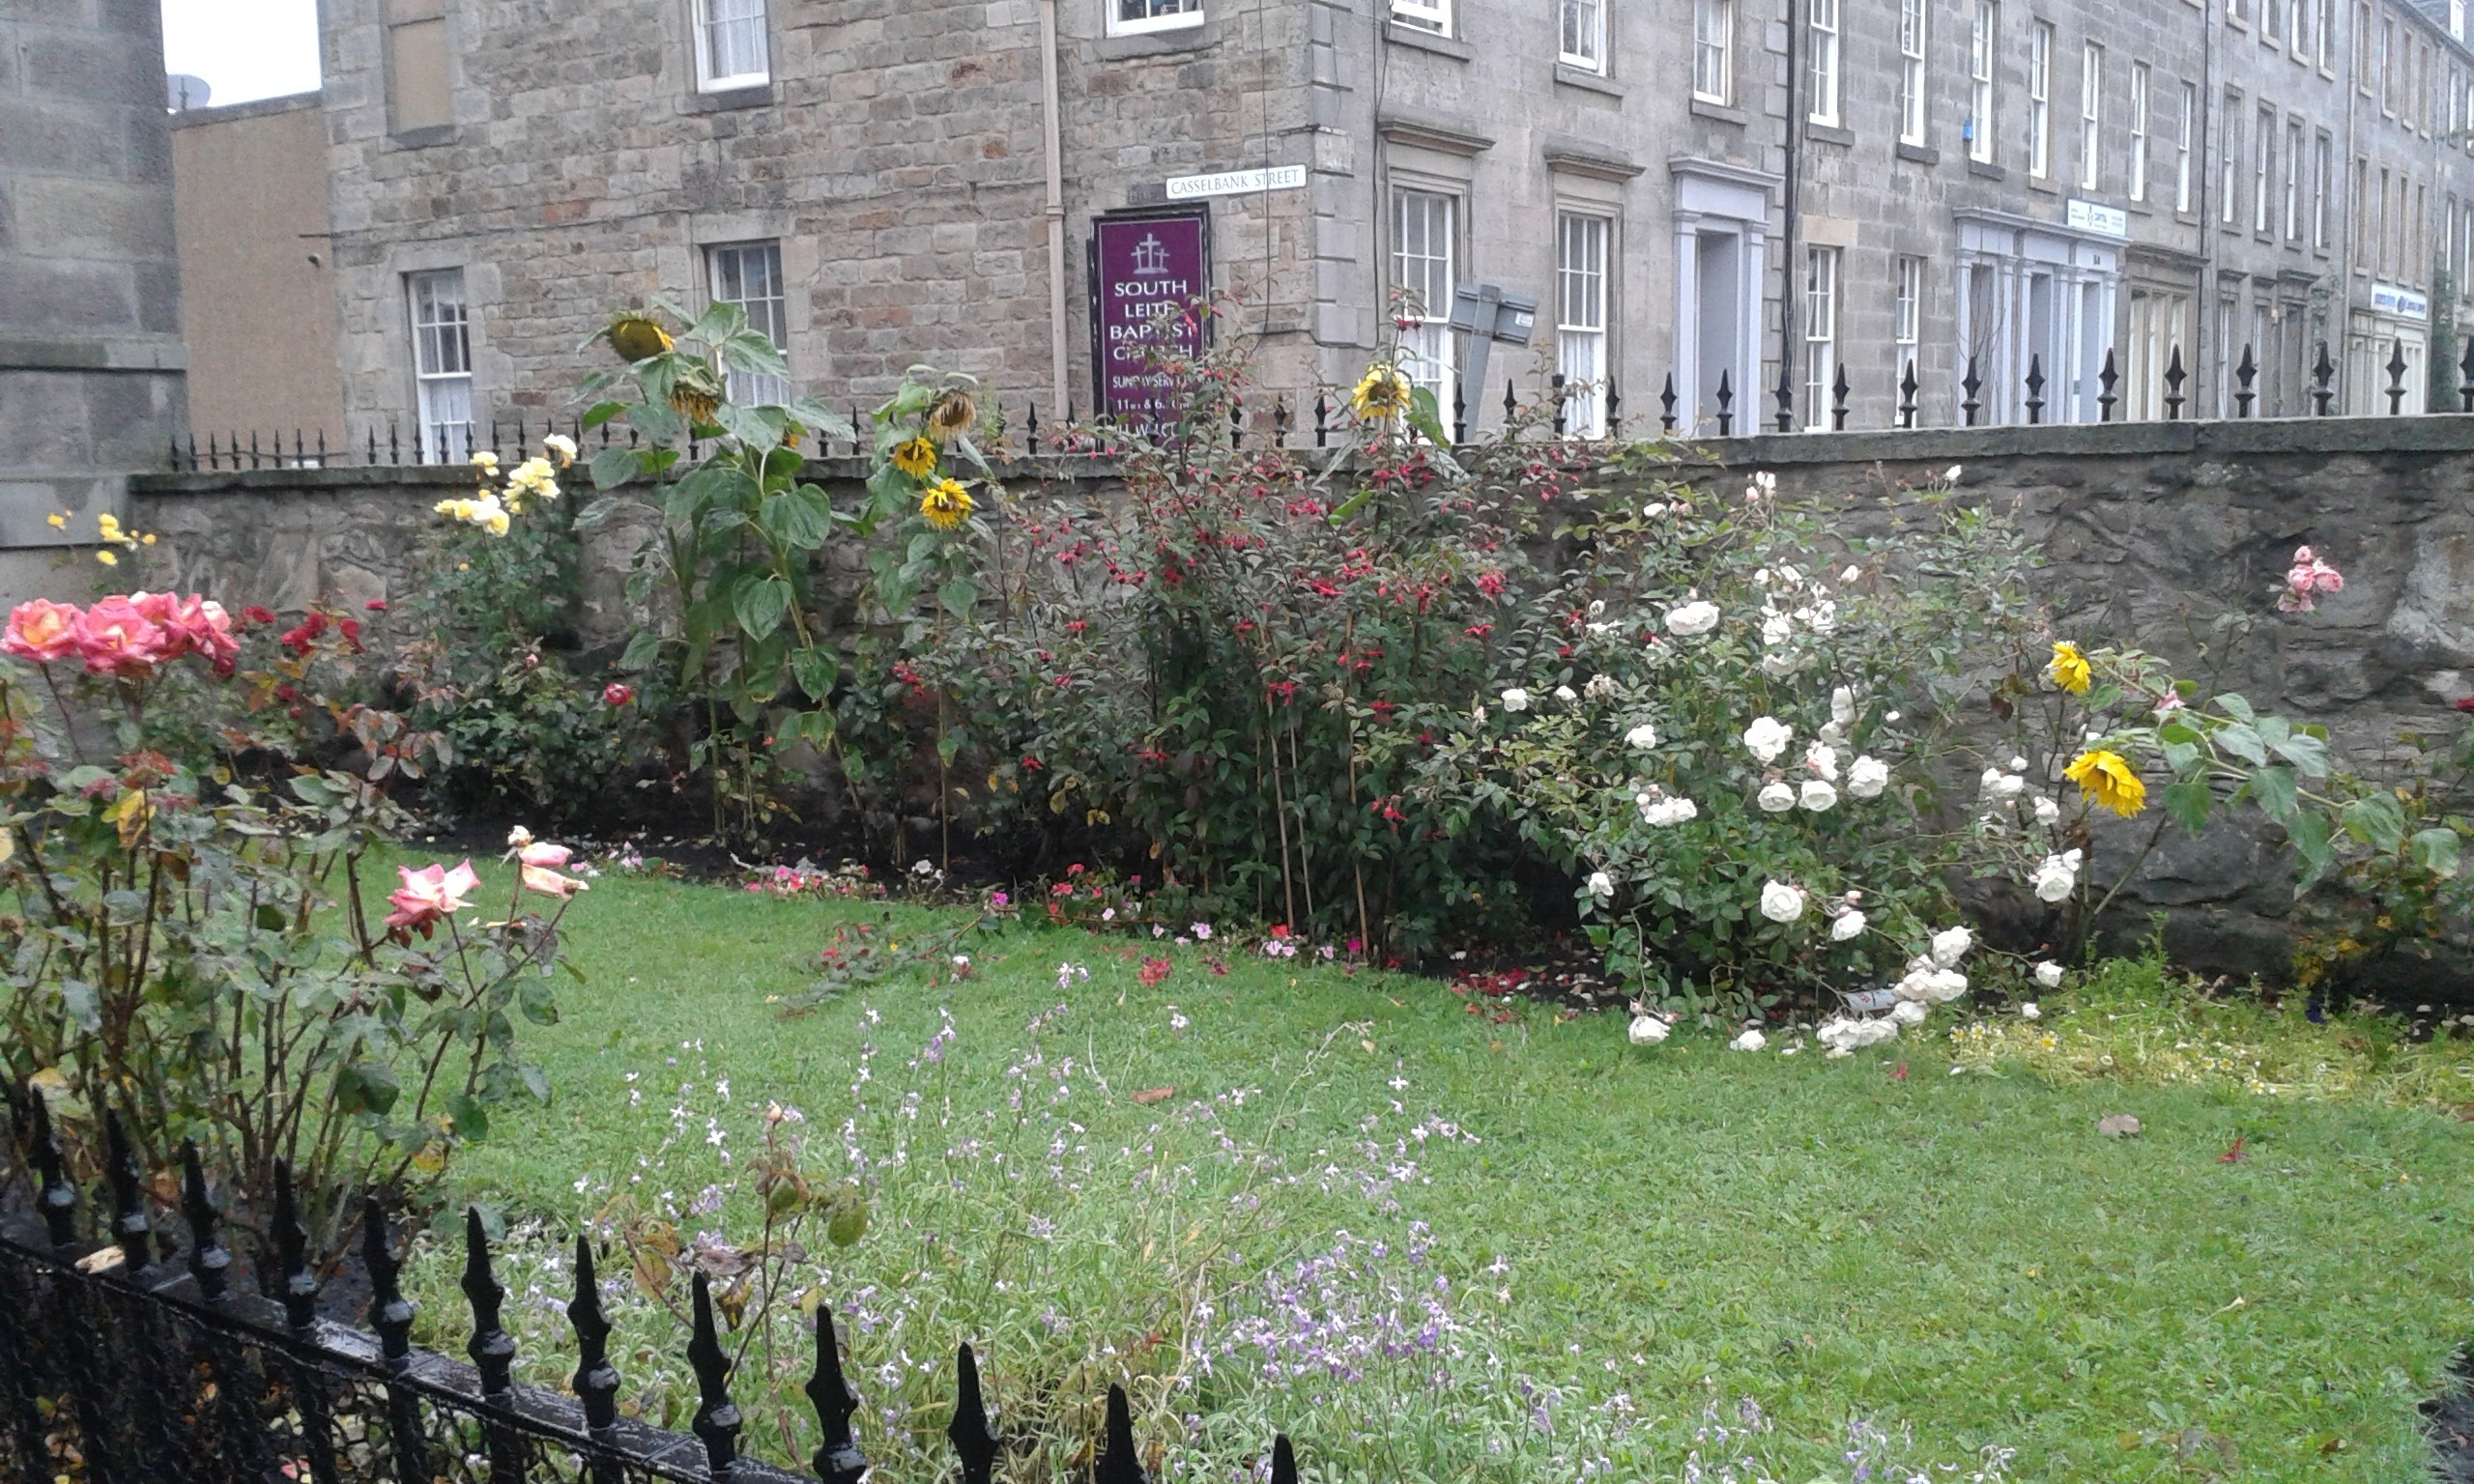 No011 Peas, Love and Bumblebees in the secret gardens of Edinburgh